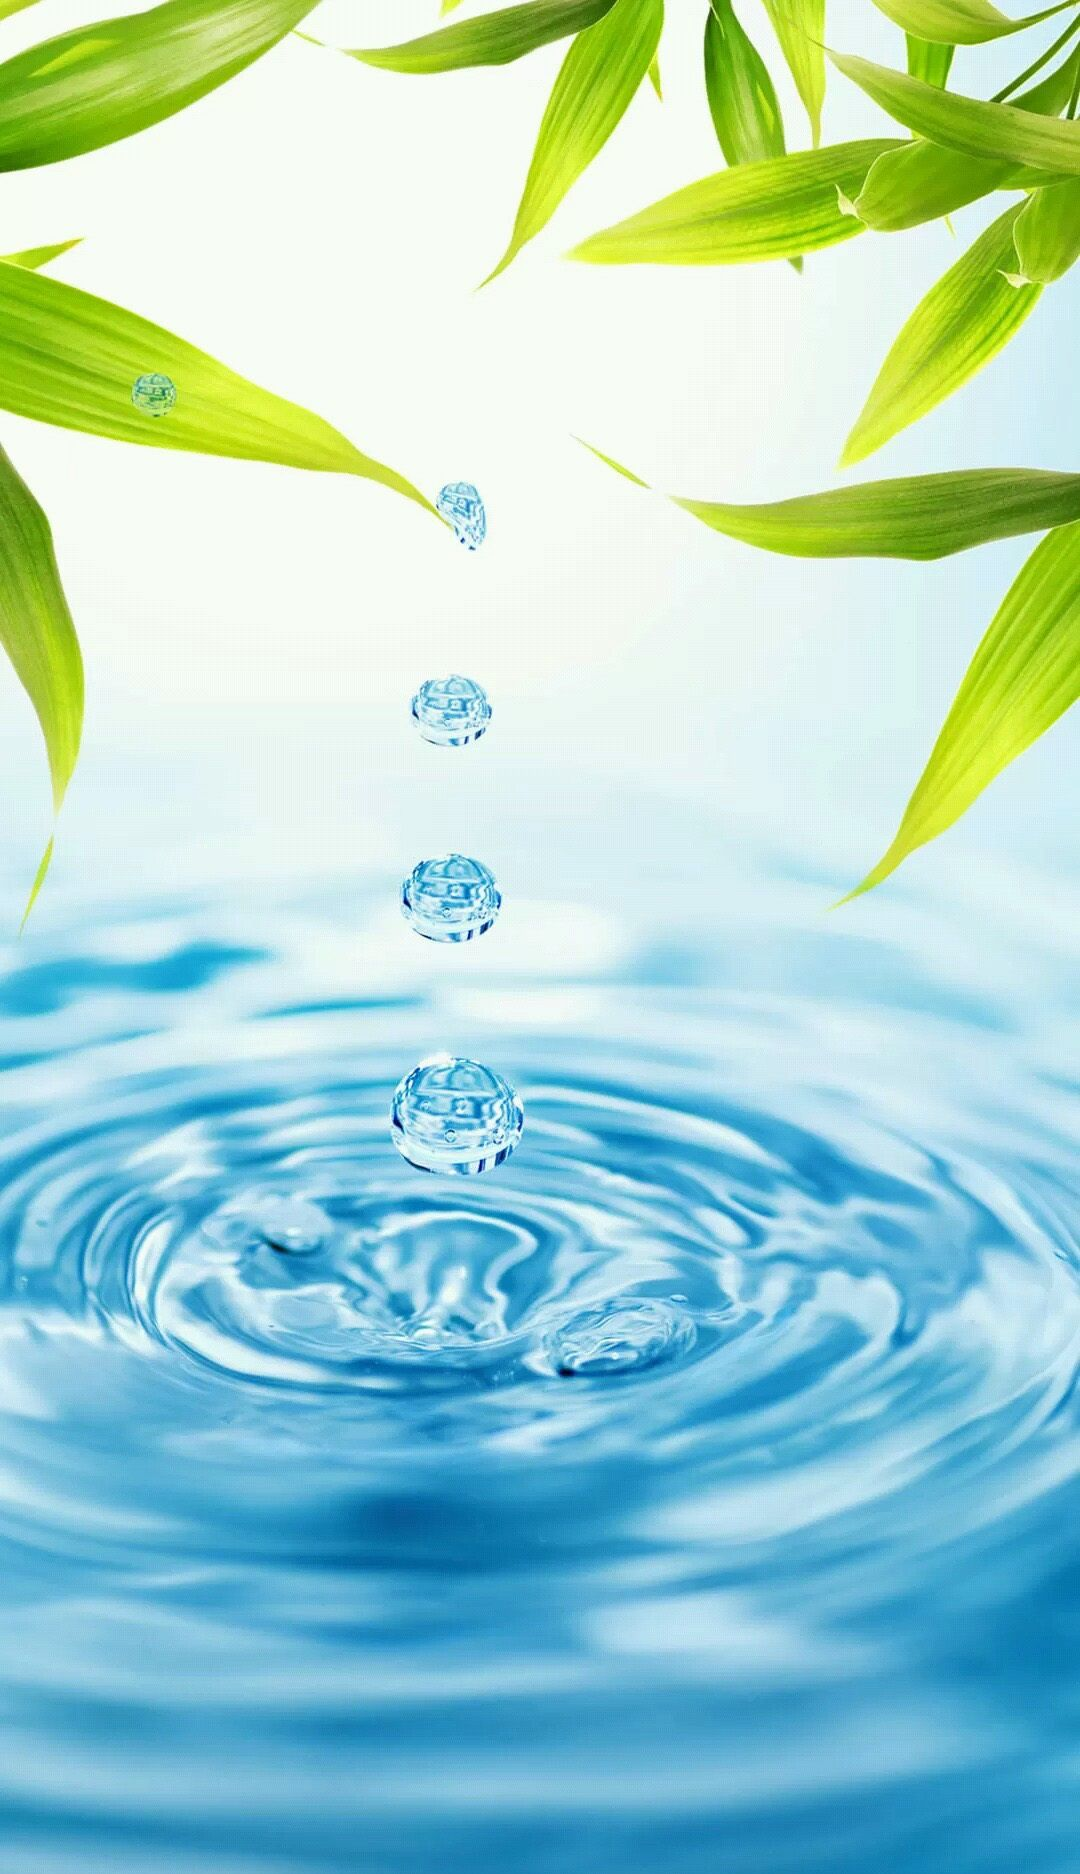 Bamboo 3d Lock Screen Hd 1080x1920 Samsung Galaxy Note 3 Wallpaper Android Urdu Water Droplets Water Background Water Images